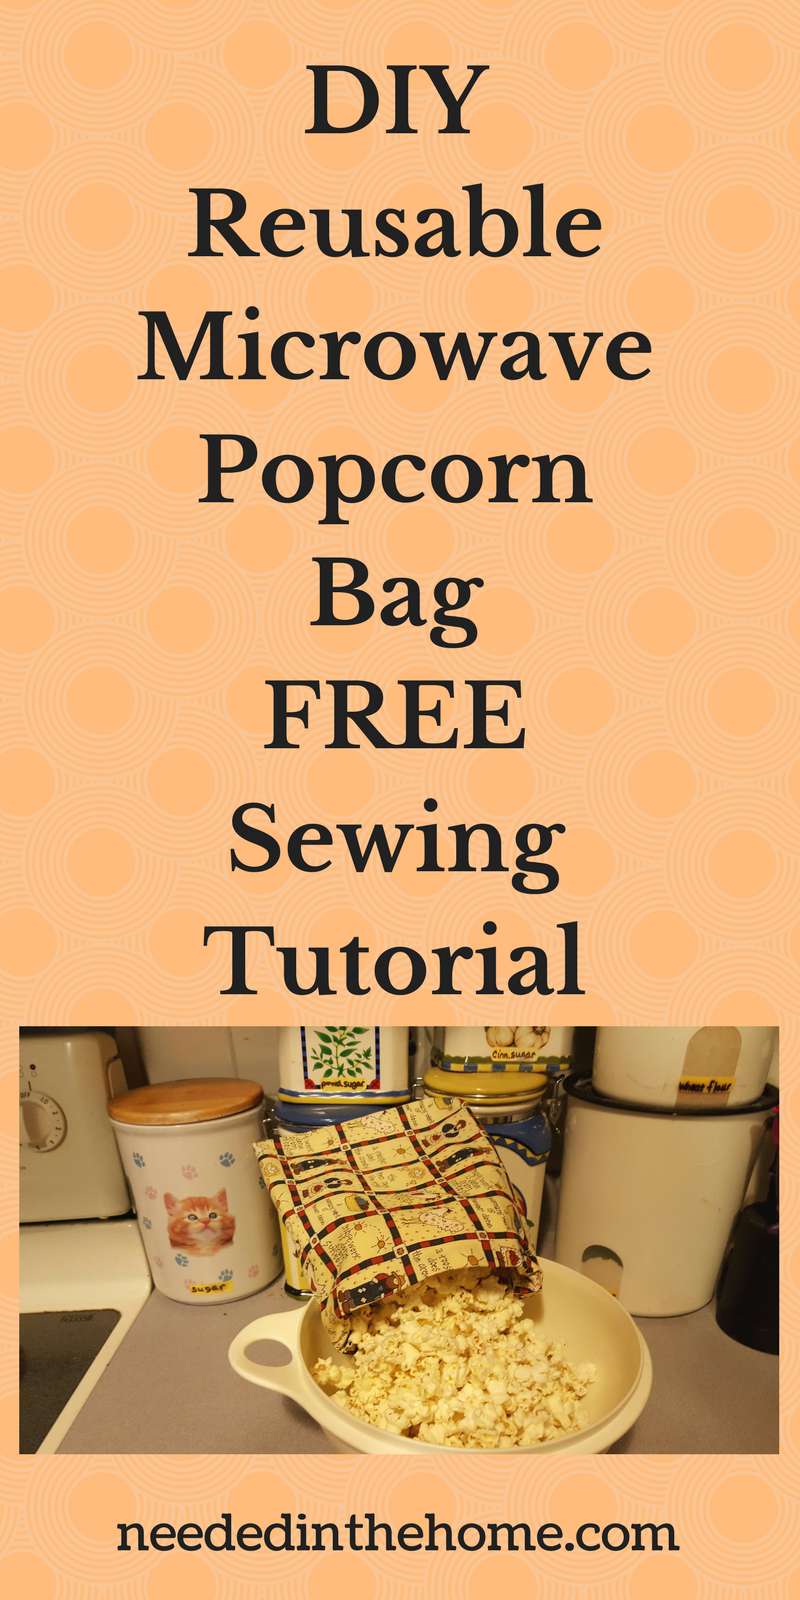 DIY Reusable Microwave Popcorn Bag FREE Sewing Tutorial image of kitchen decorative popcorn bag with popcorn spilling into white bowl on counter neededinthehome